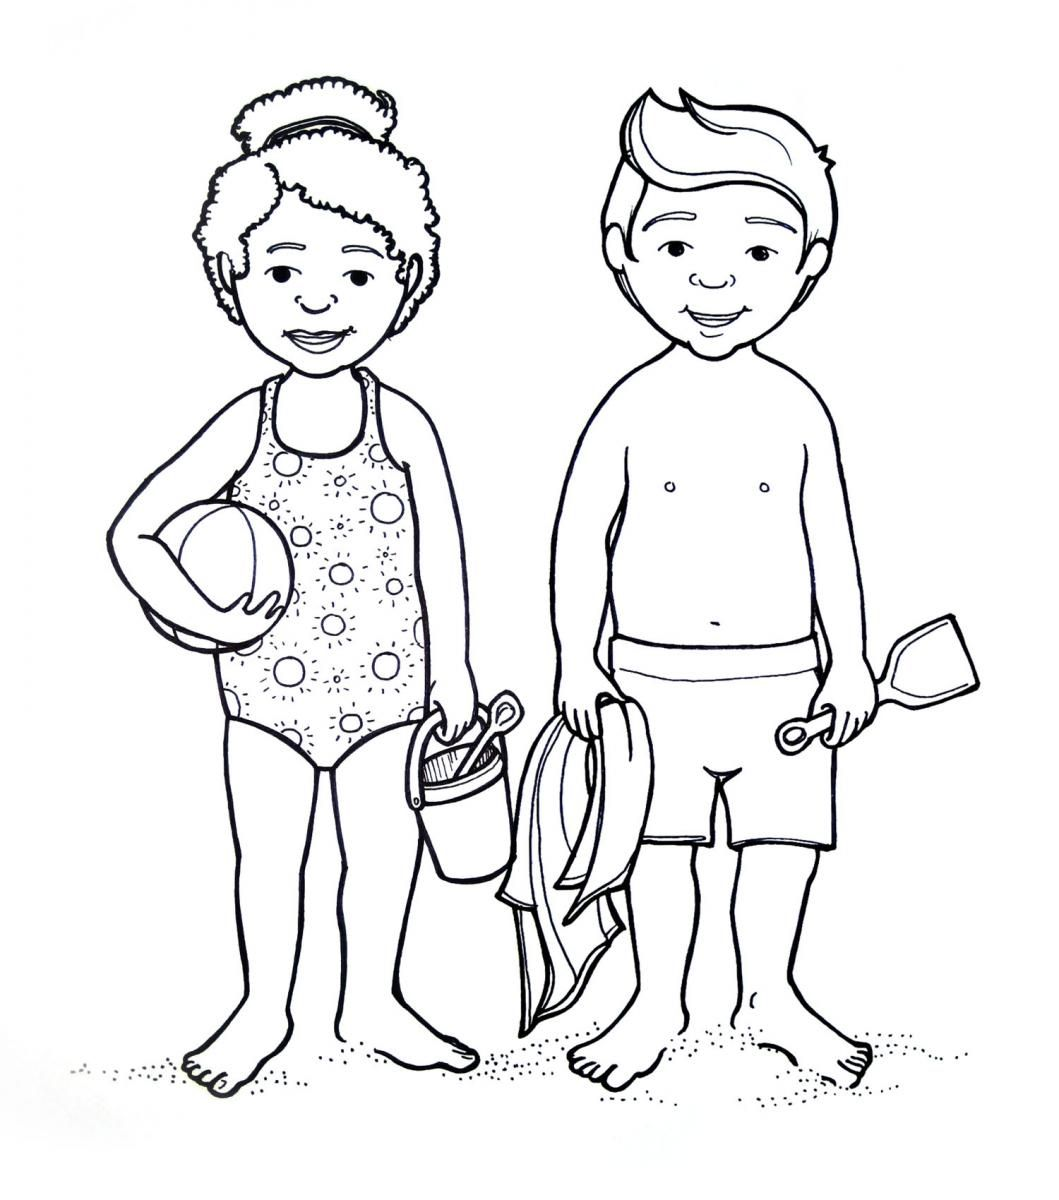 preschool body coloring pages - photo#12